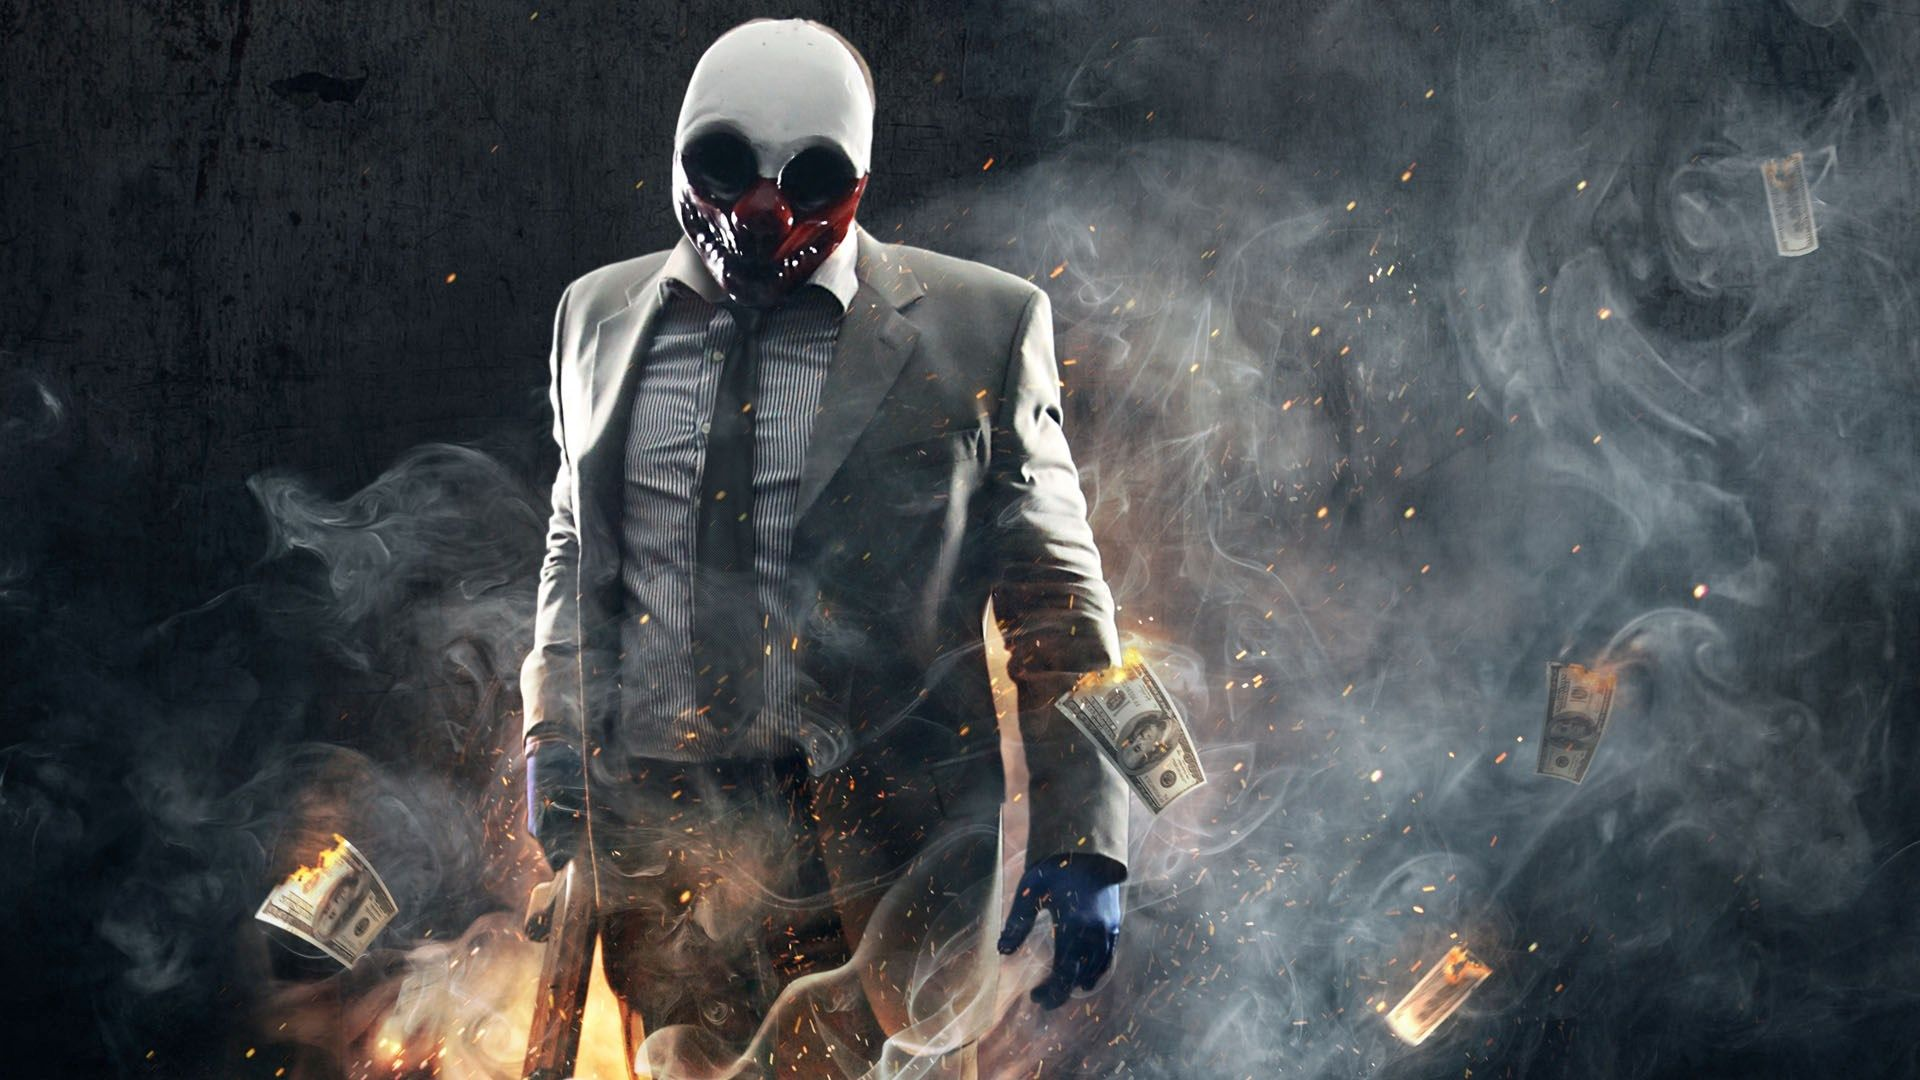 1920x1080 Payday 2 Game Wallpaper Payday 2 Videojuegos Y